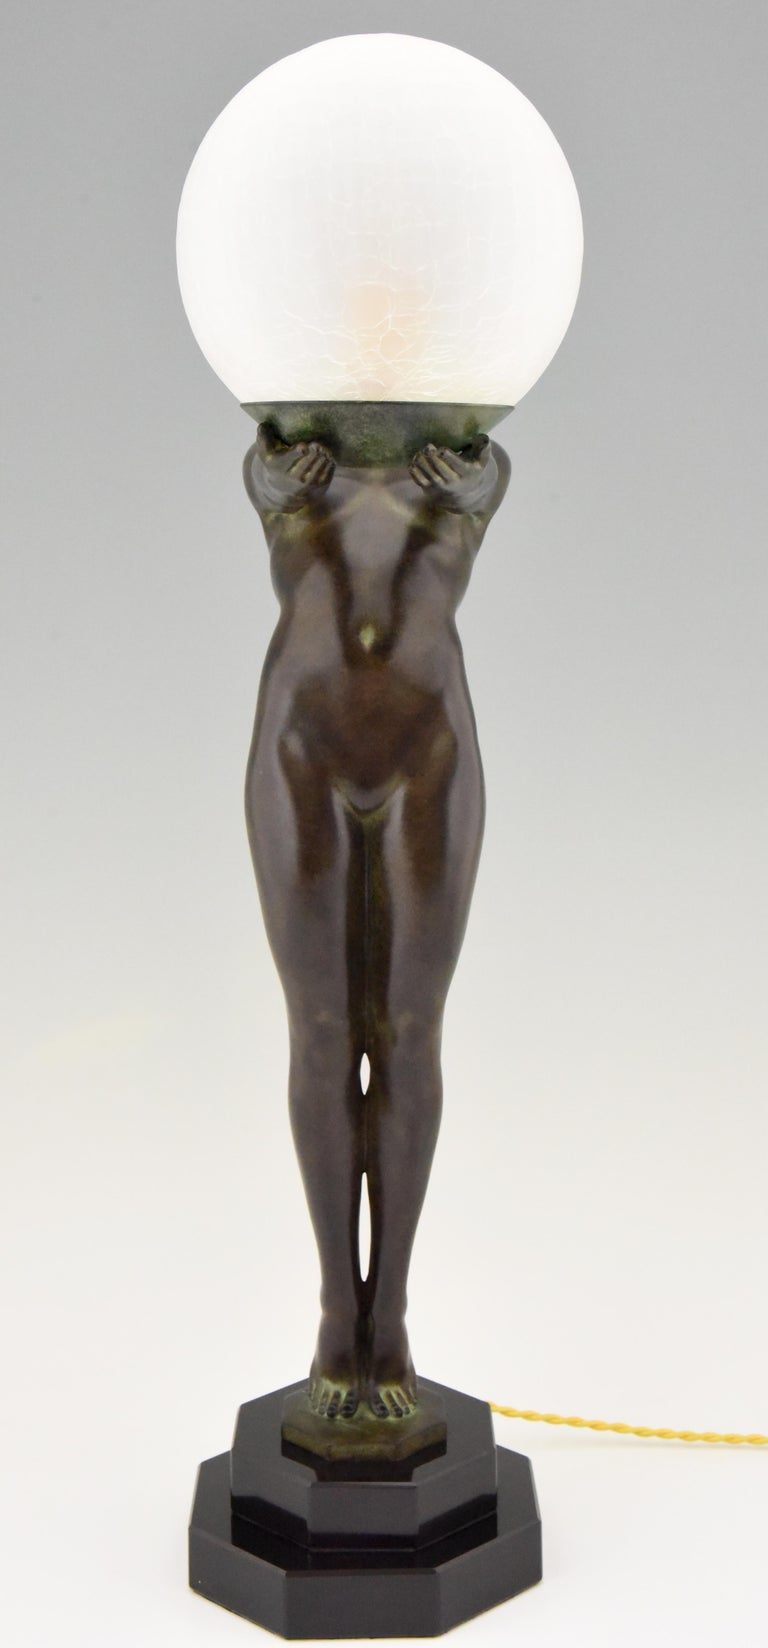 Patinated Art Deco Style Lamp Lumina Standing Nude Sculpture Max Le Verrier Original For Sale